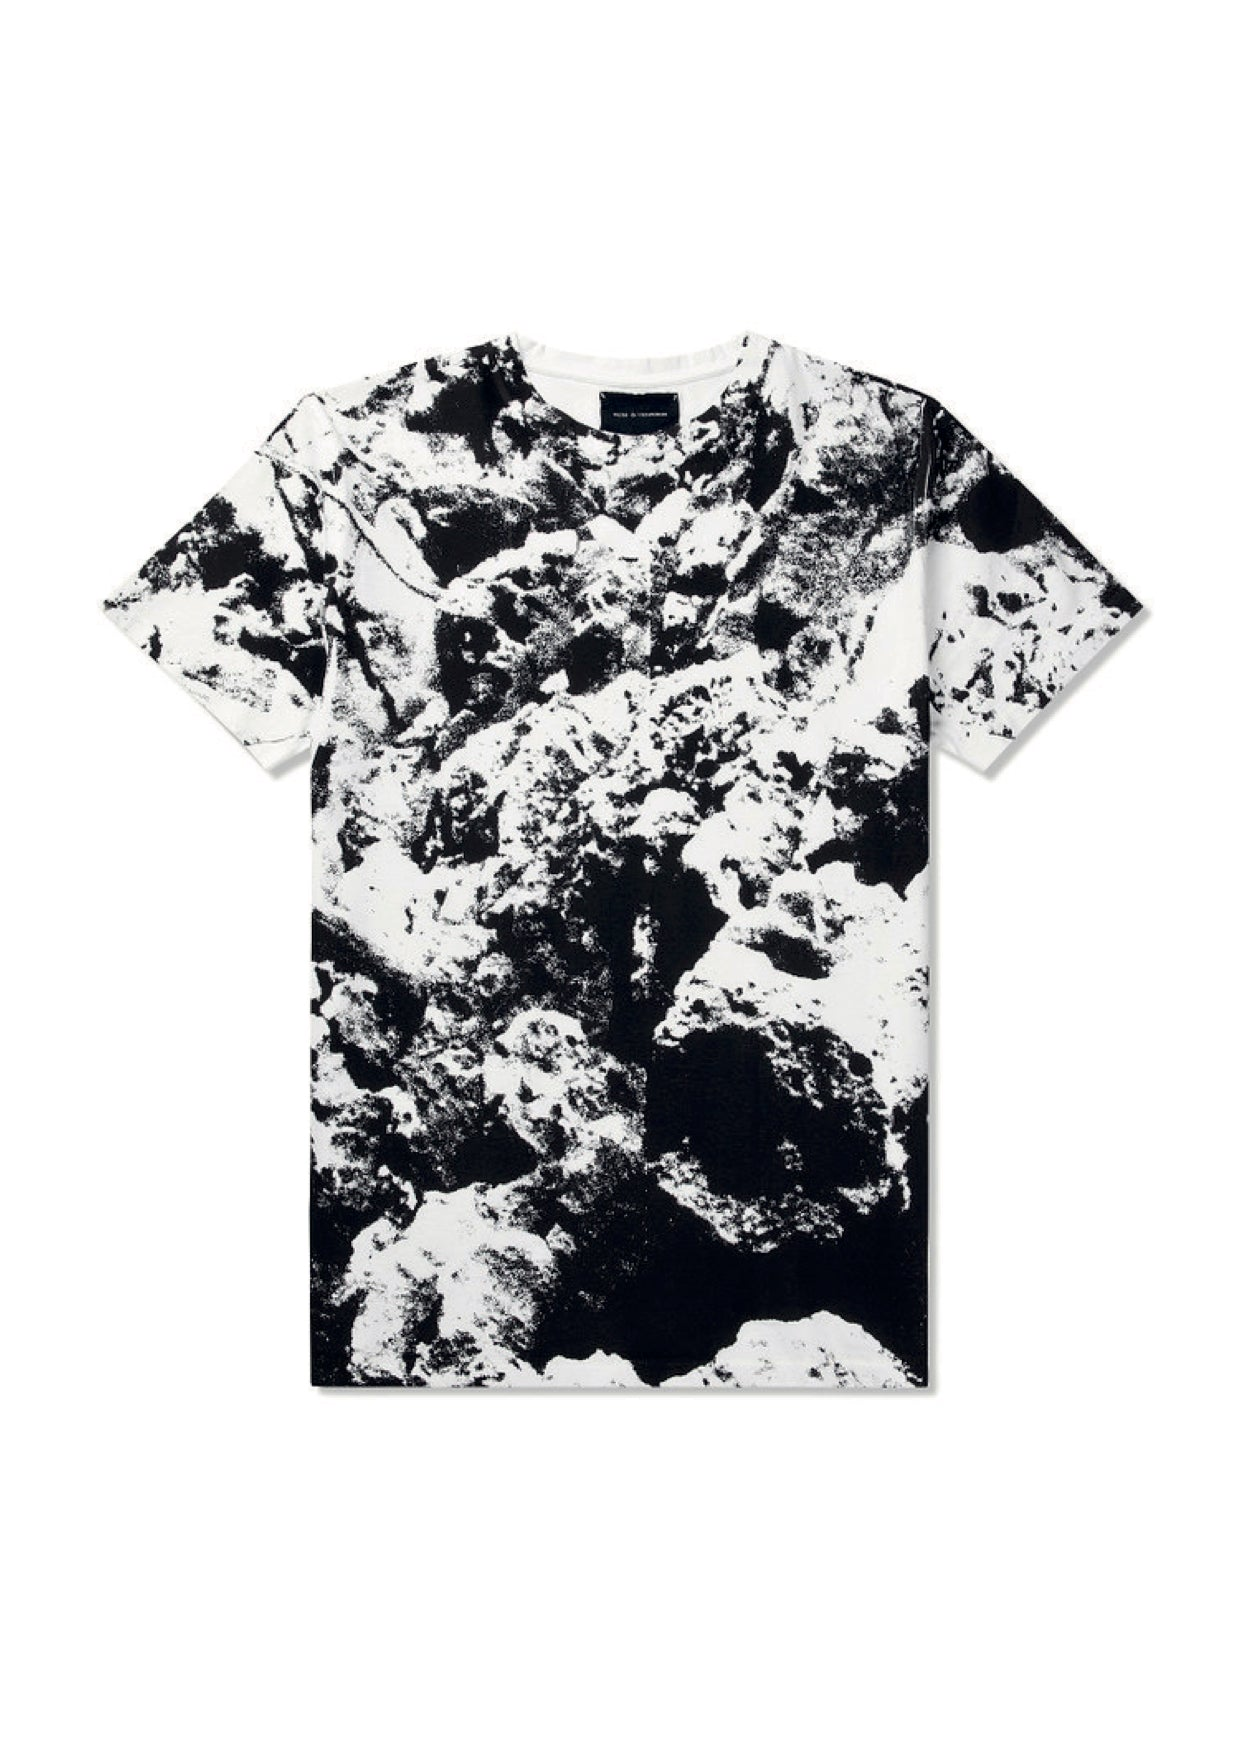 AW13 'White substance allover' tee - white